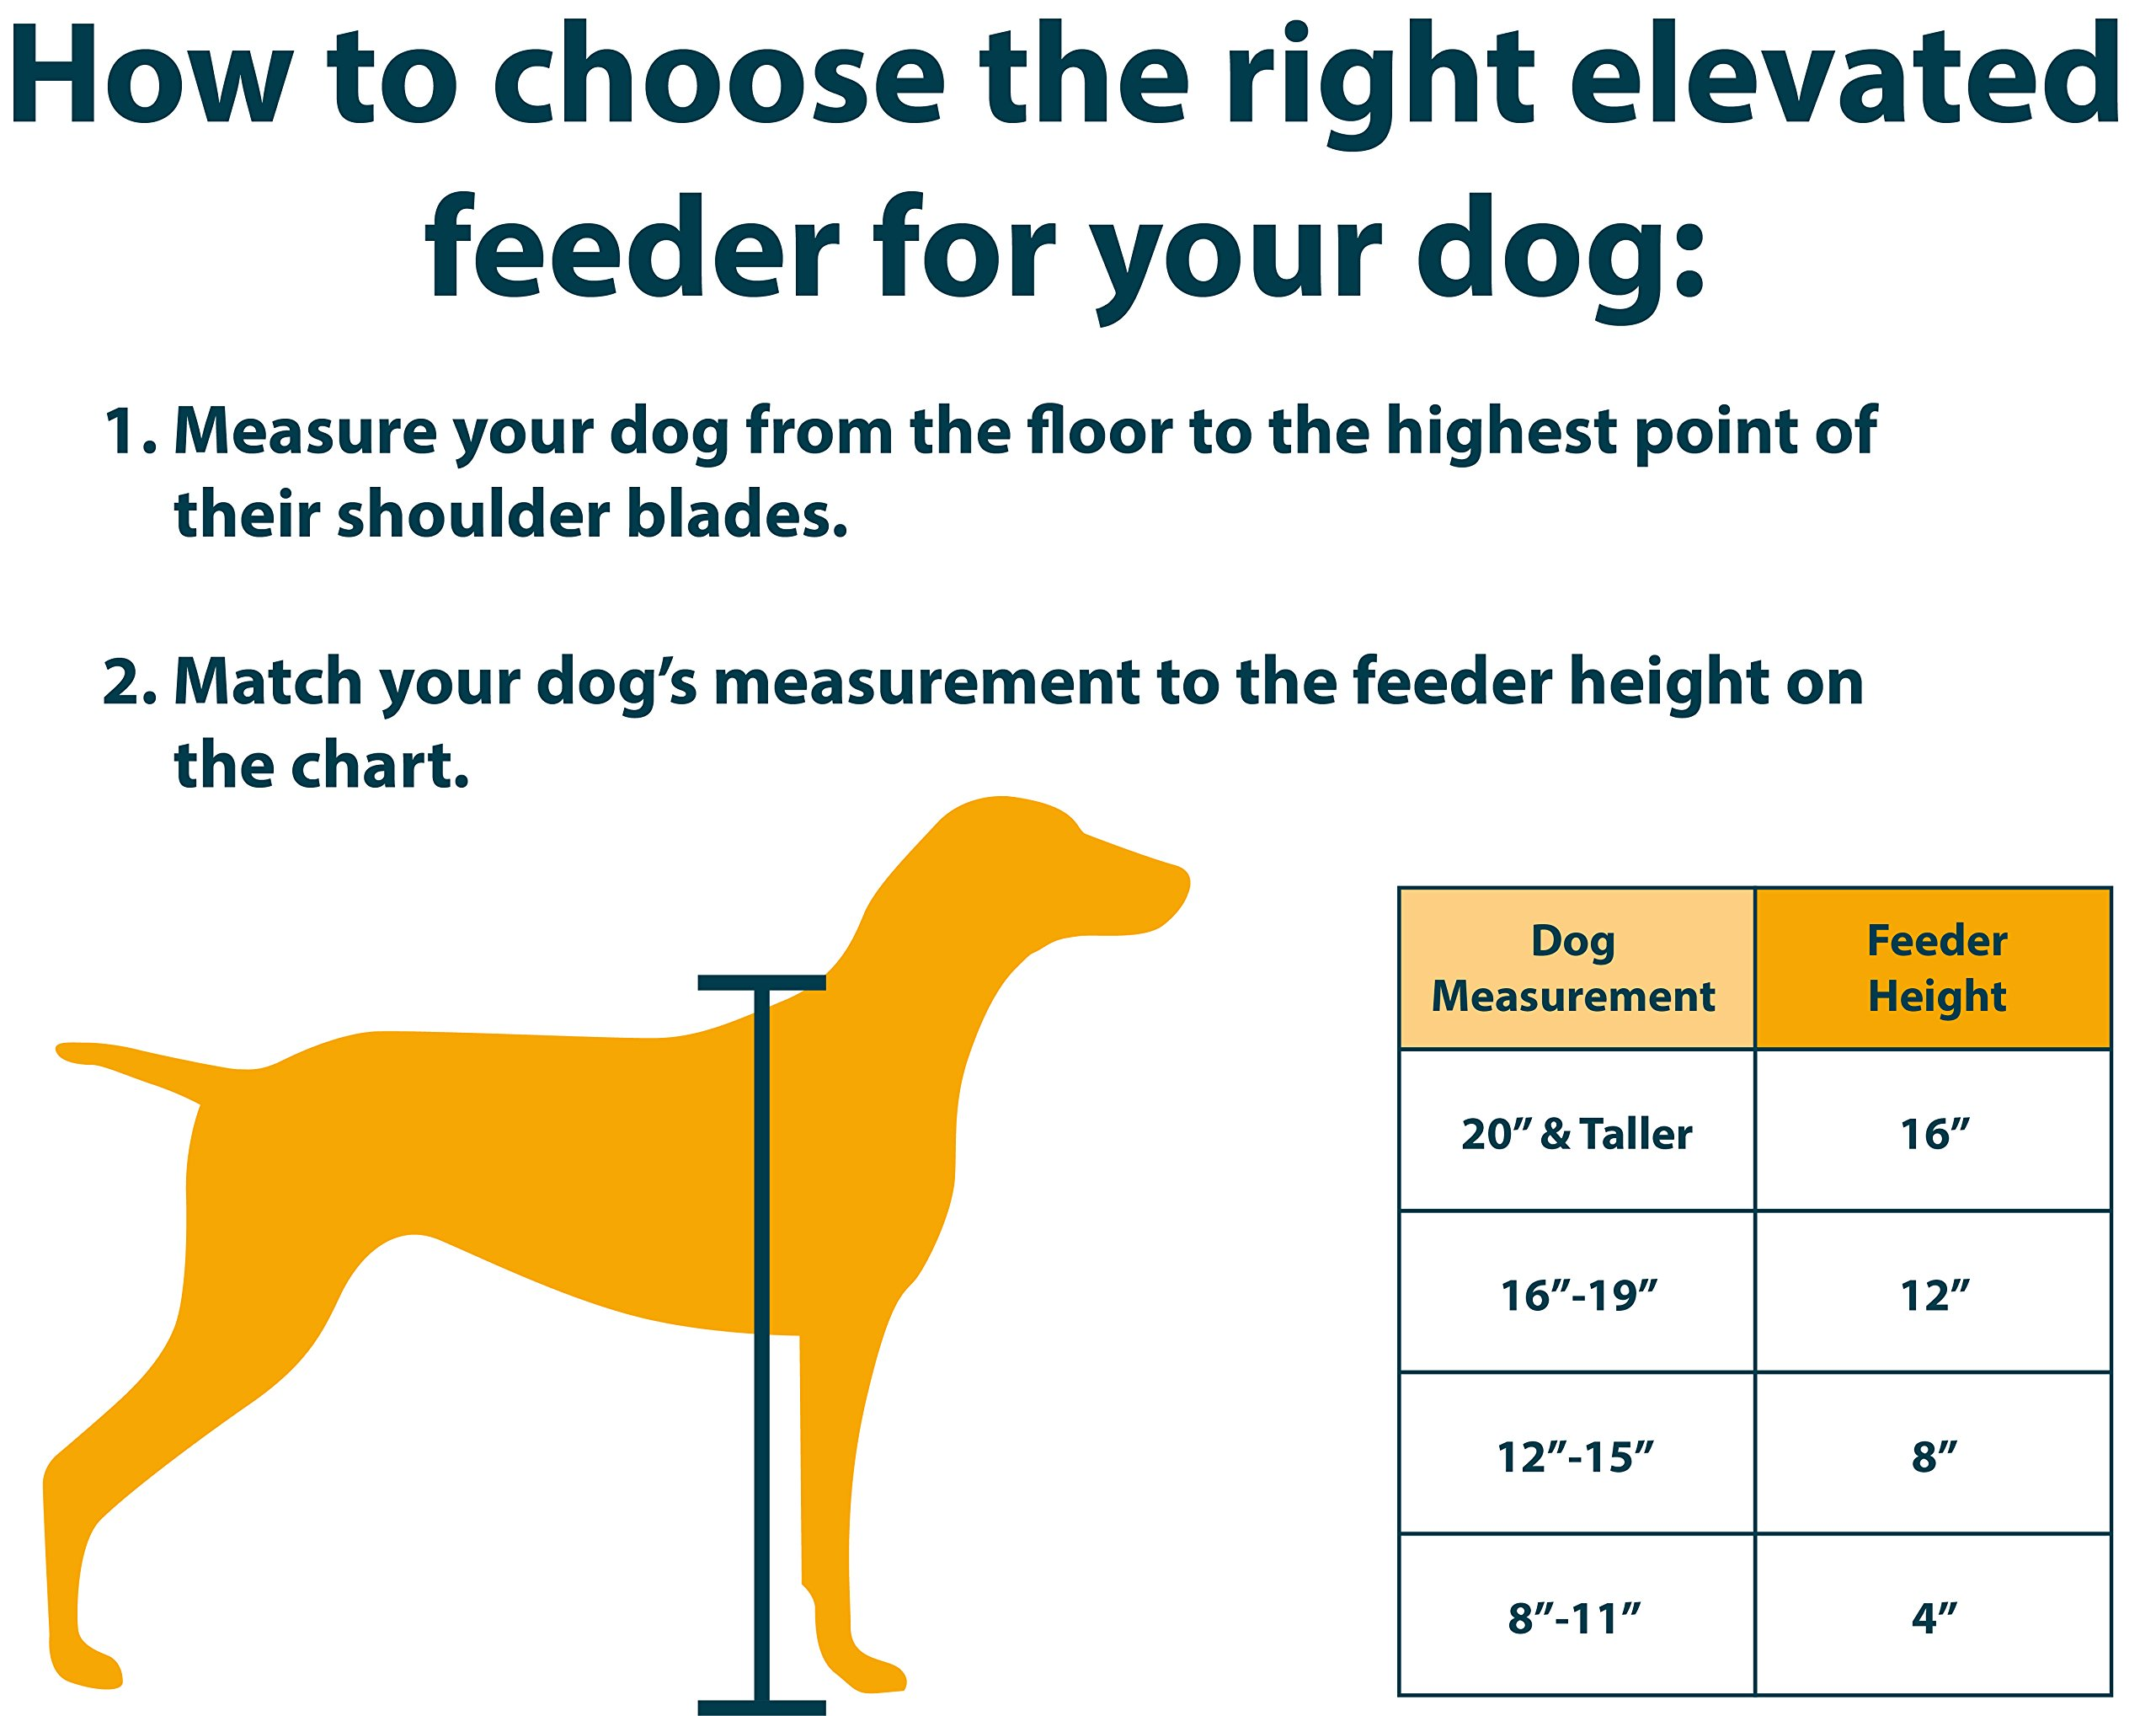 Our Pets Signature Series Elevated Dog Feeder 4''